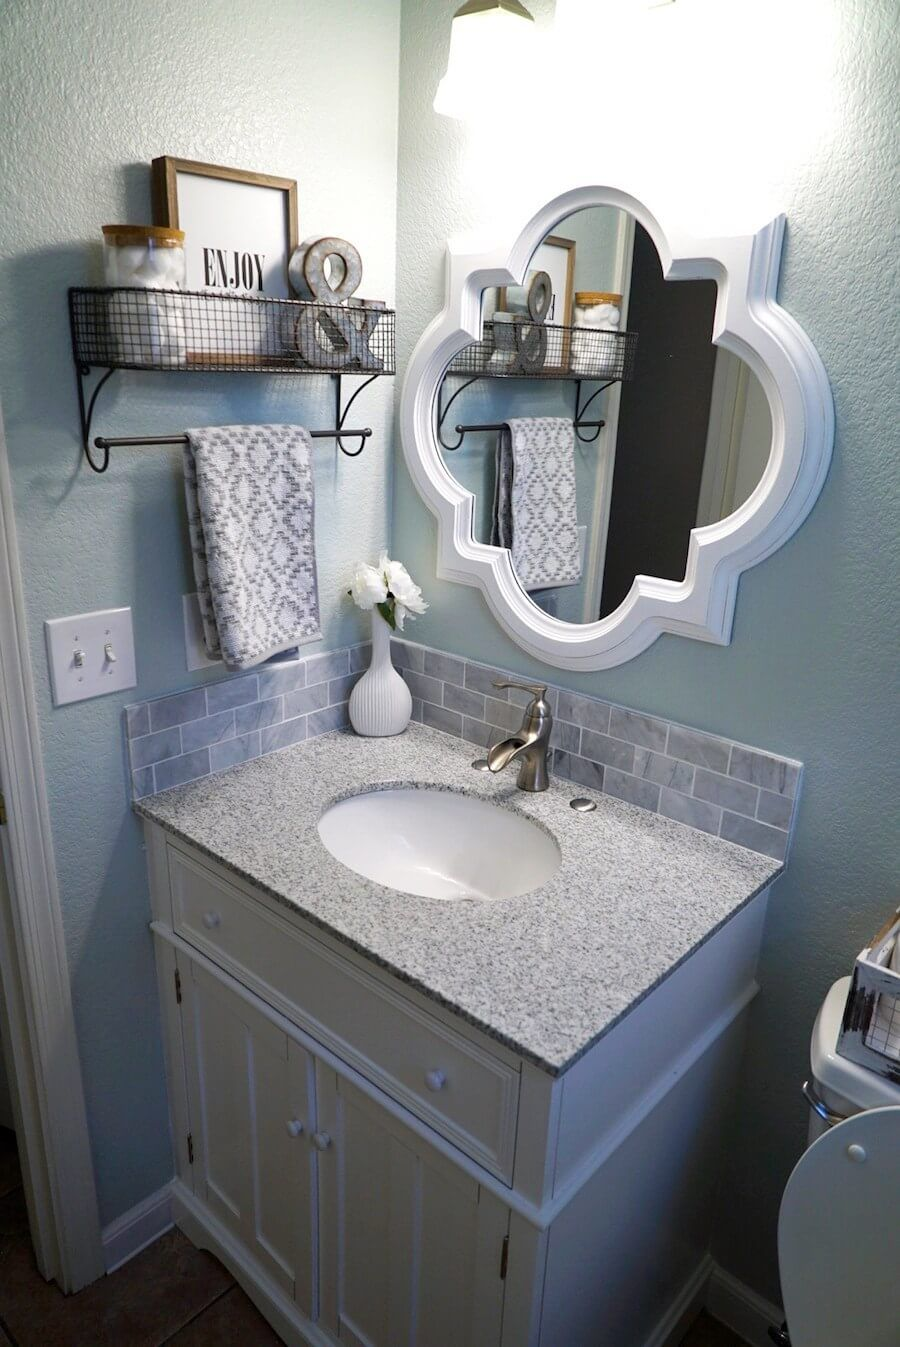 8 Small Bathroom Counter Organization Hacks That You Have To Try - Forever Free By Any Means